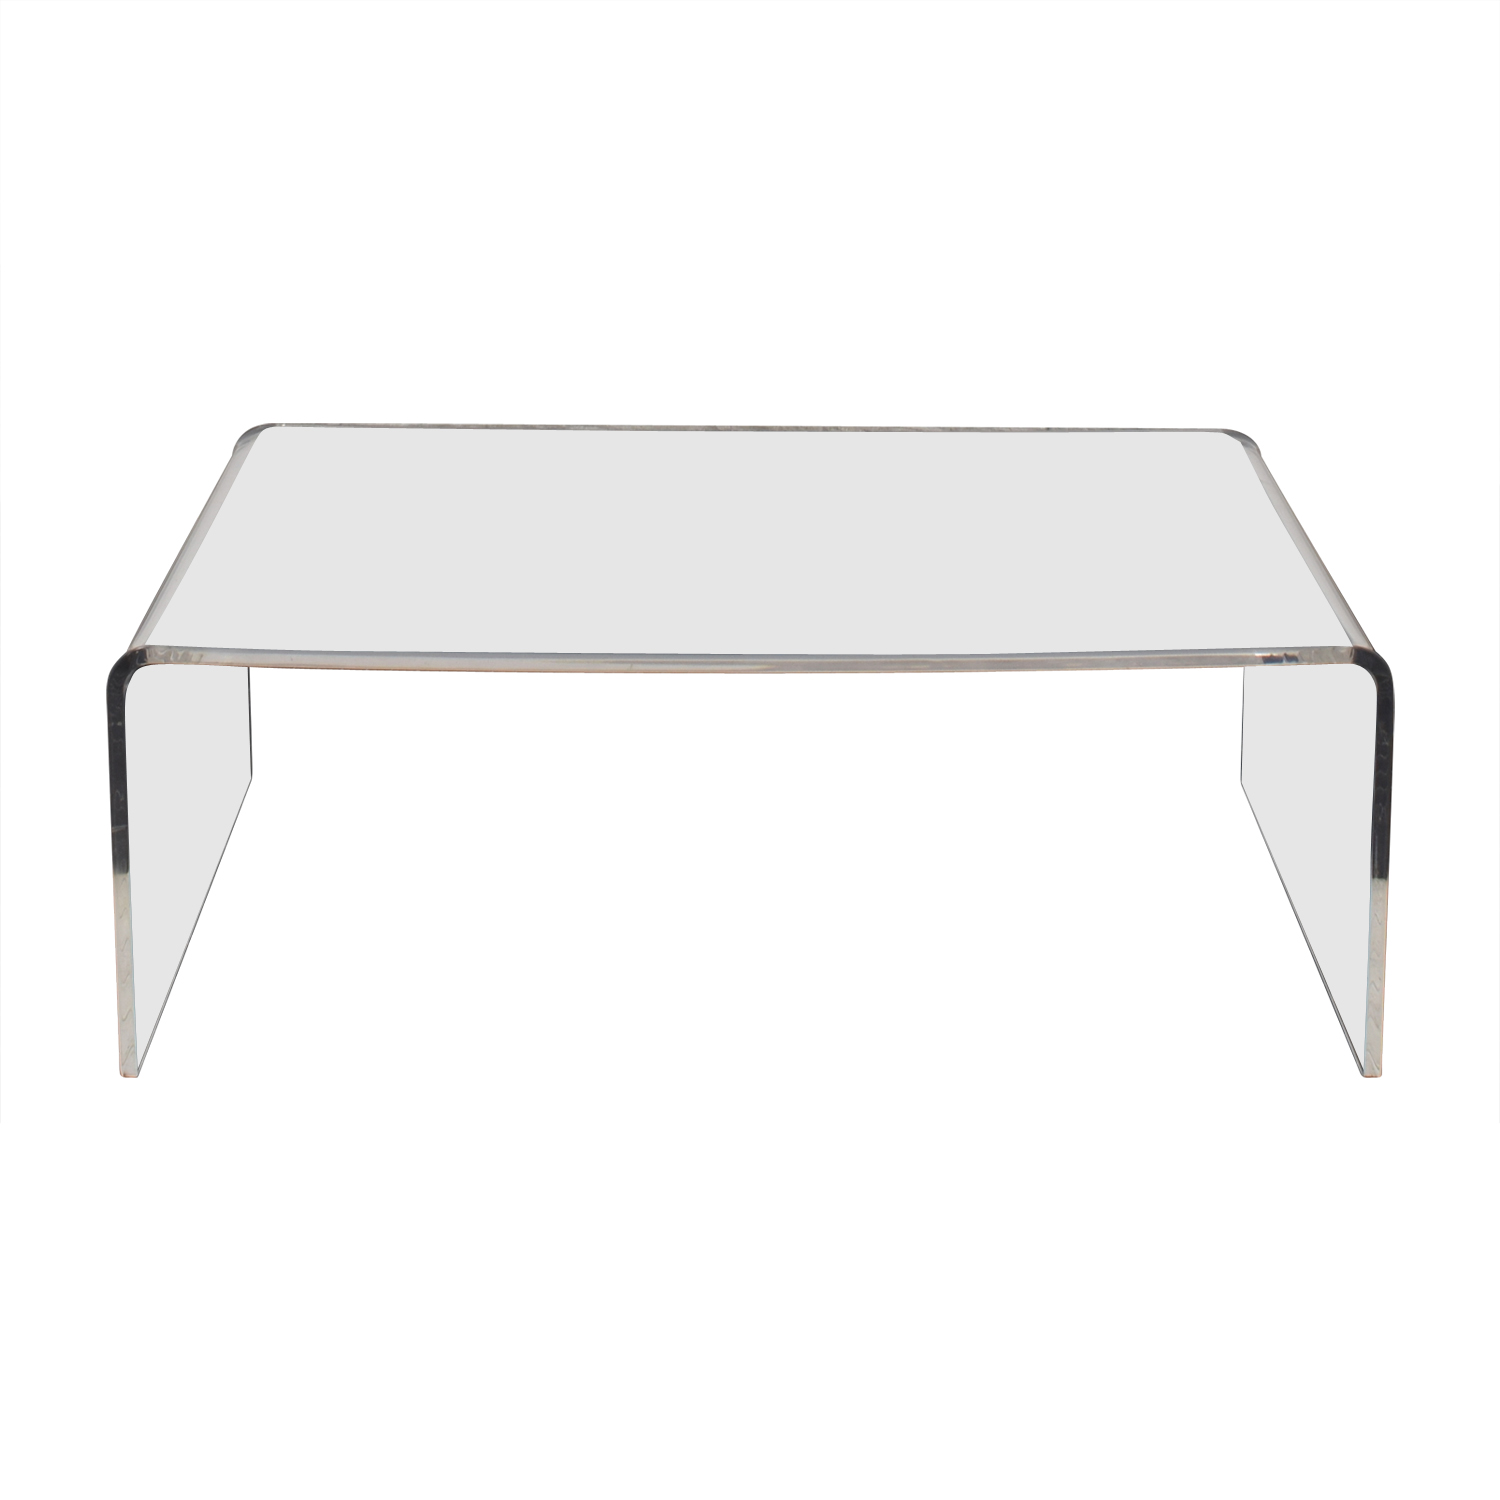 CB2 Acrylic Ghost Coffee Table / Tables